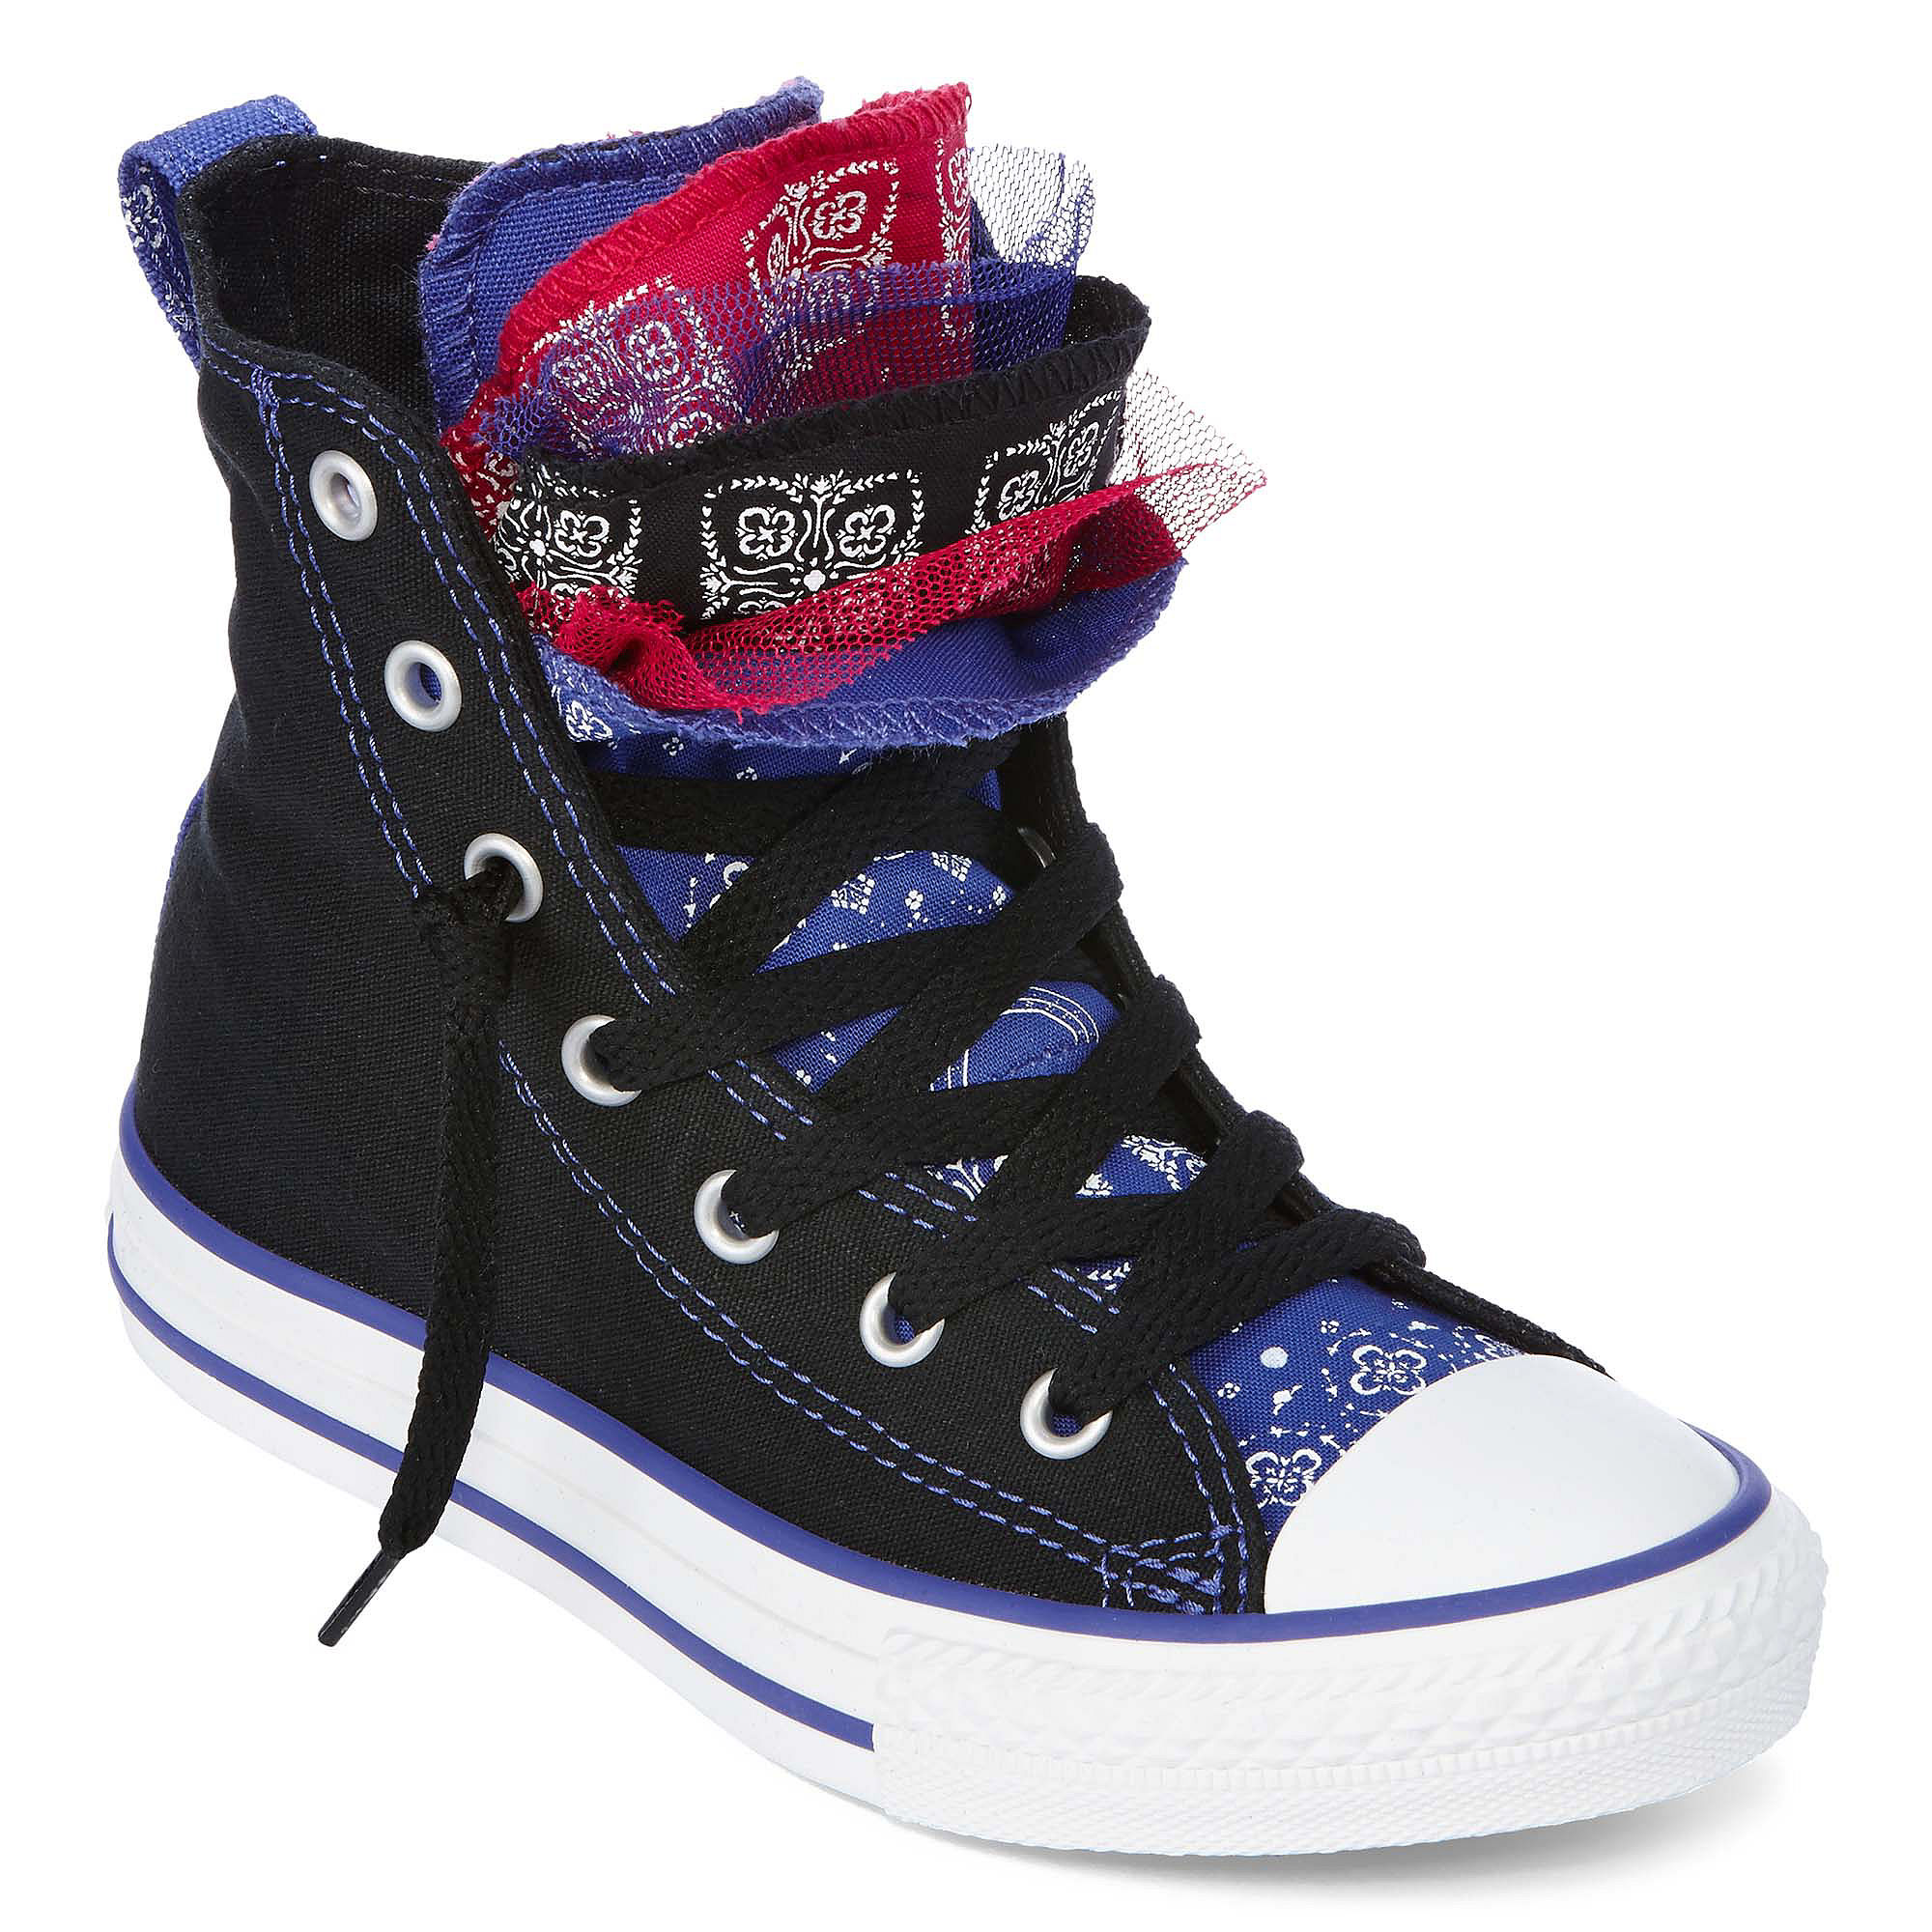 e1e976001f97 UPC 886955653849 - Converse Chuck Taylor All Star Party Girls ...